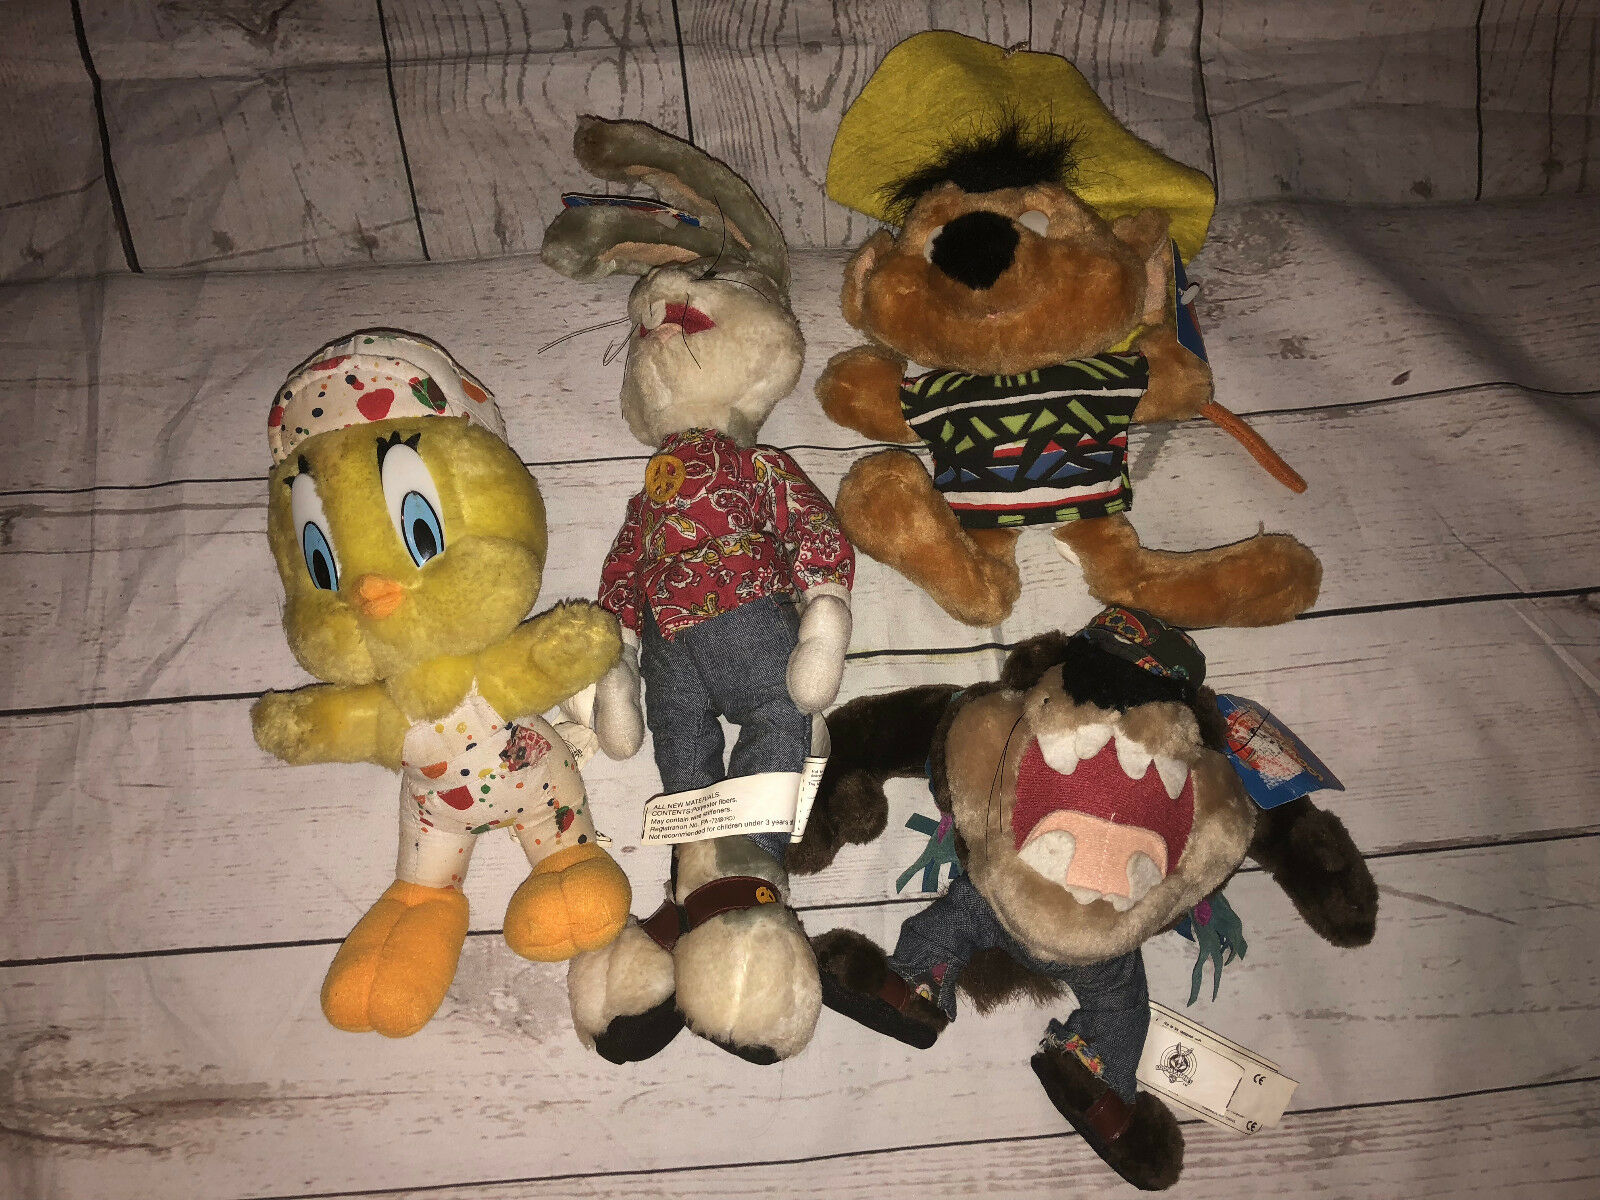 Looney Tunes Speedy Gonzales Hippie Bugs Bunny Taz Tweety Bird Lot Plush Stuffed